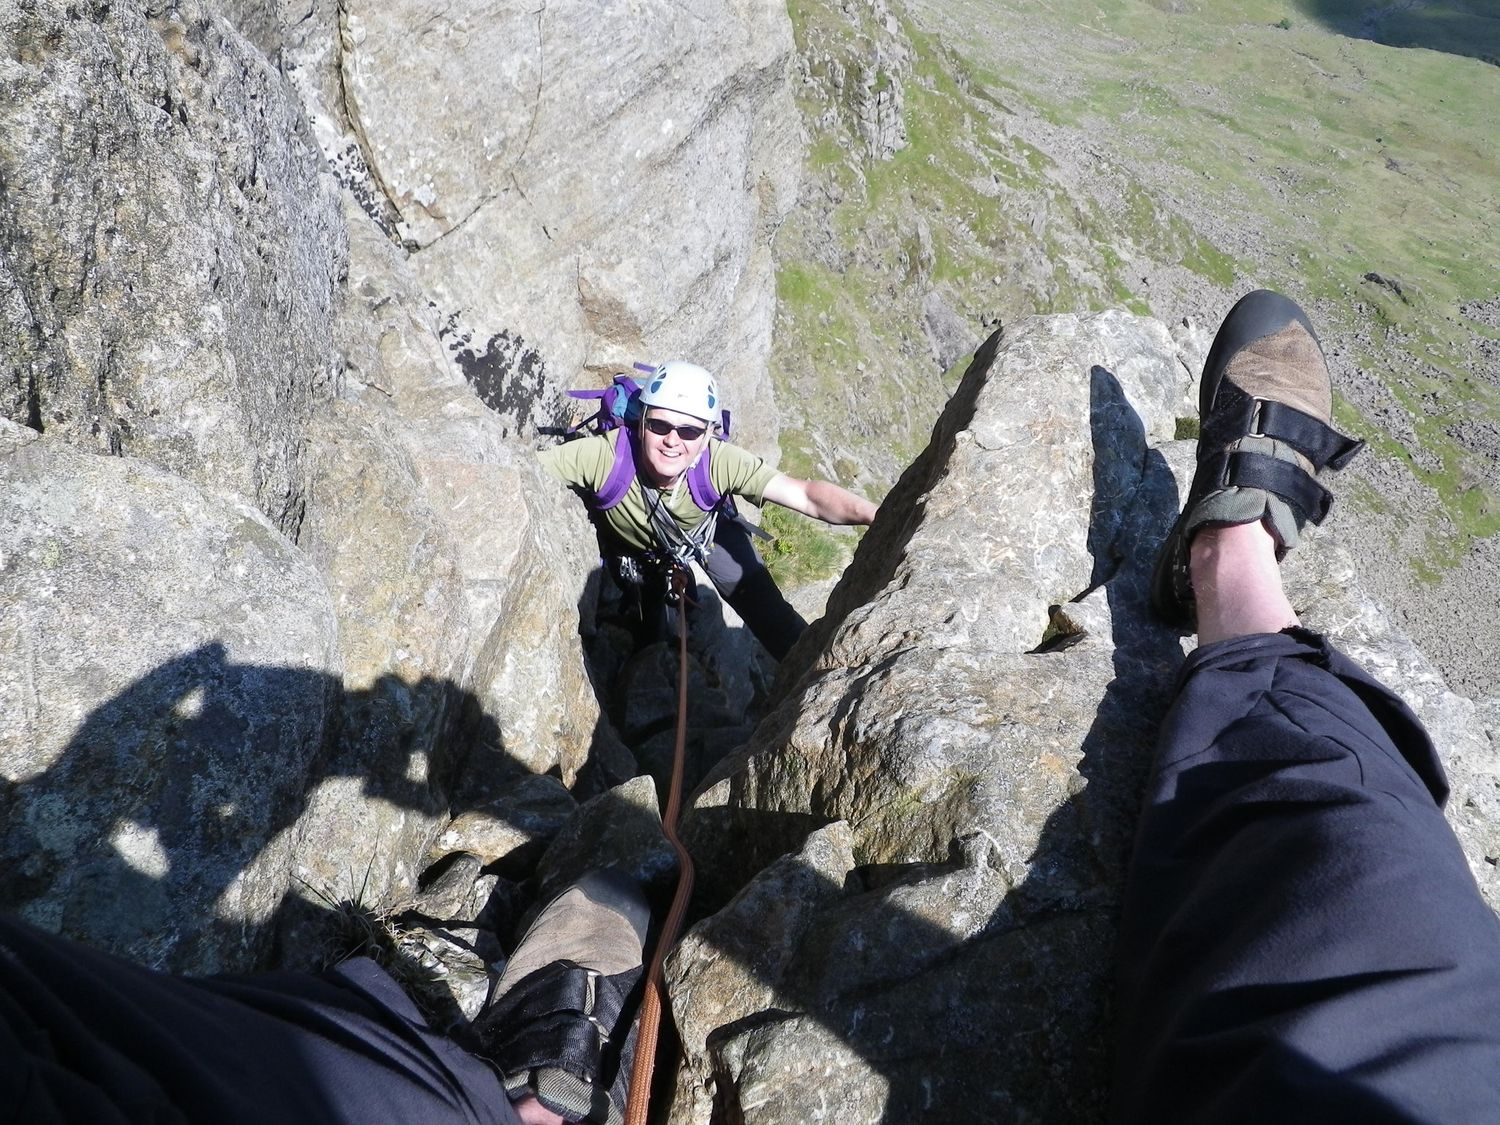 A client on a multi pitch rock climb in the Lake District - Chris Ensoll Mountain Guide